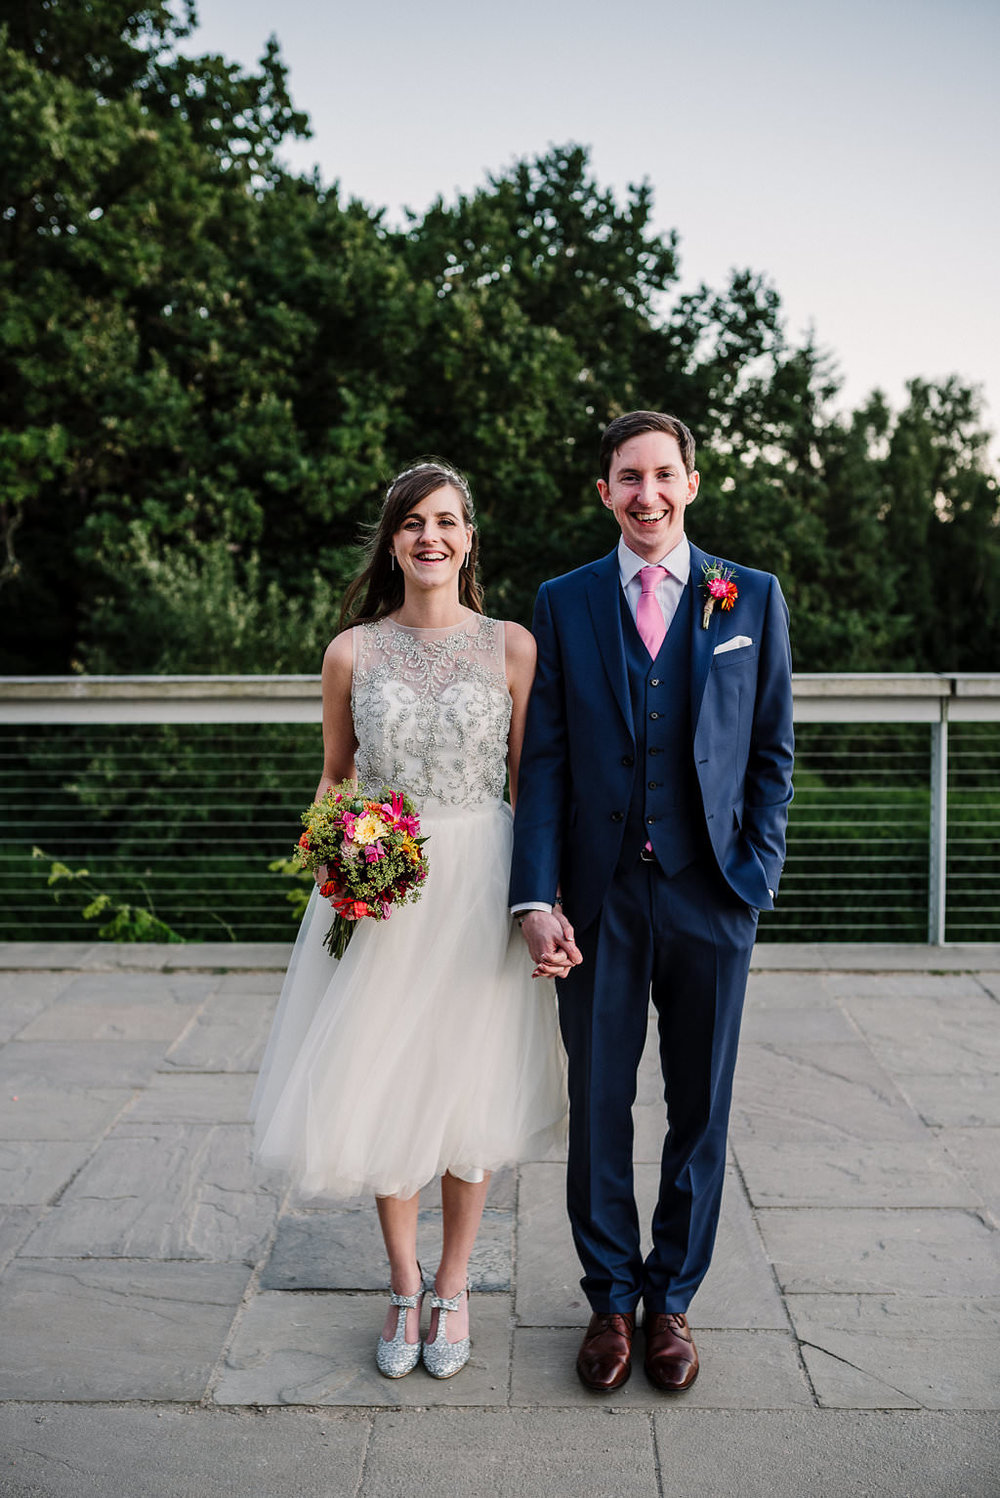 A QUIRKY COUNTRYSIDE WEDDING AT YORKSHIRE SCULPTURE PARK